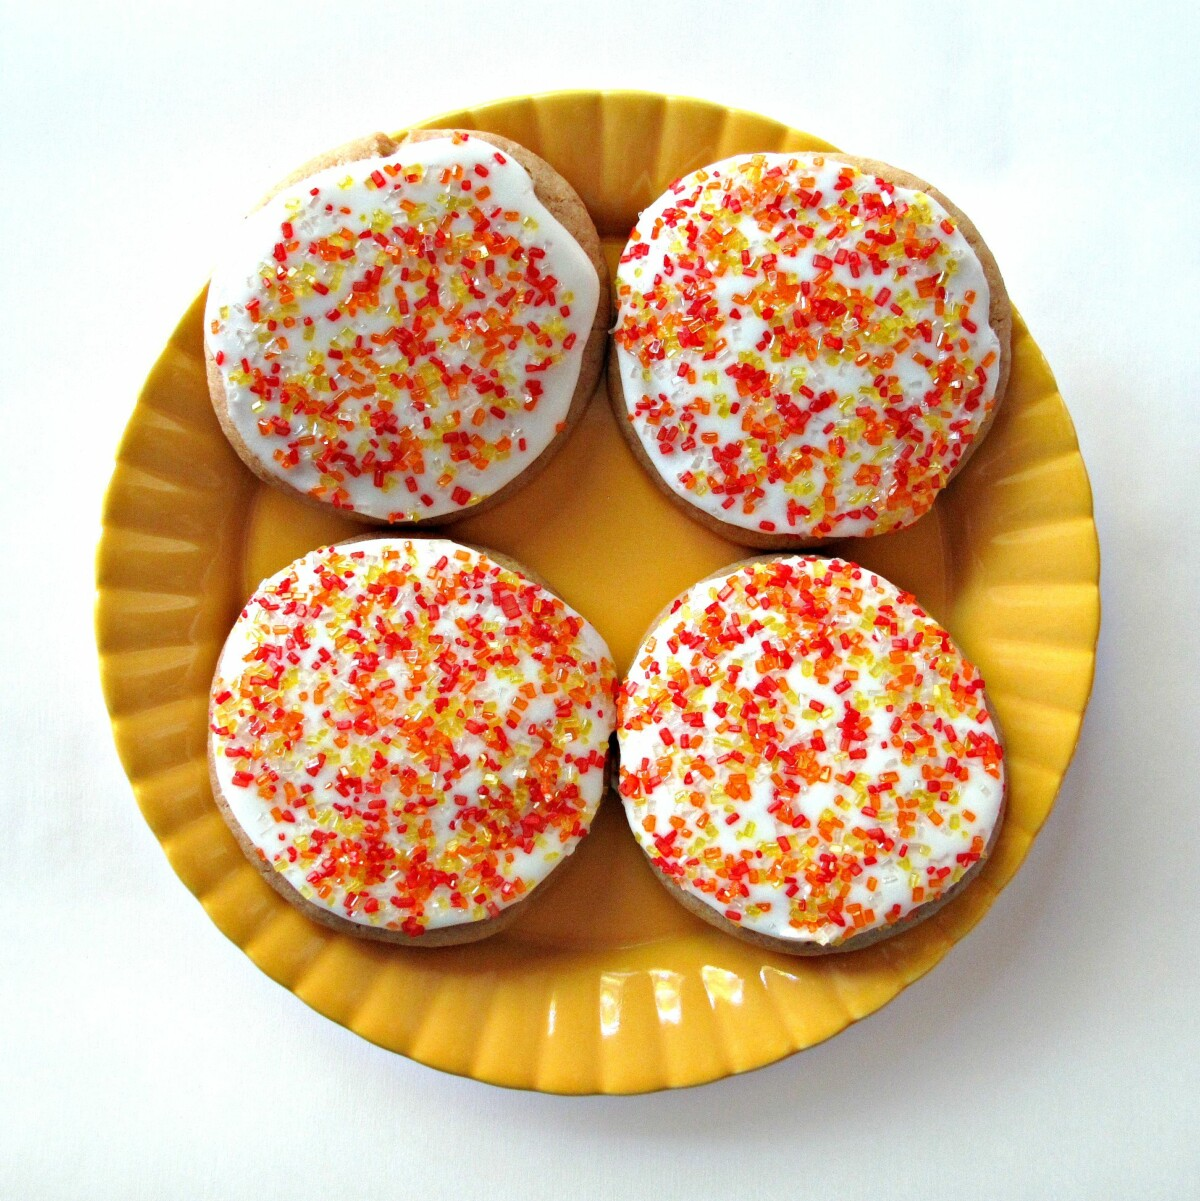 Four iced cookies with yellow and red sprinkles on a yellow plate.